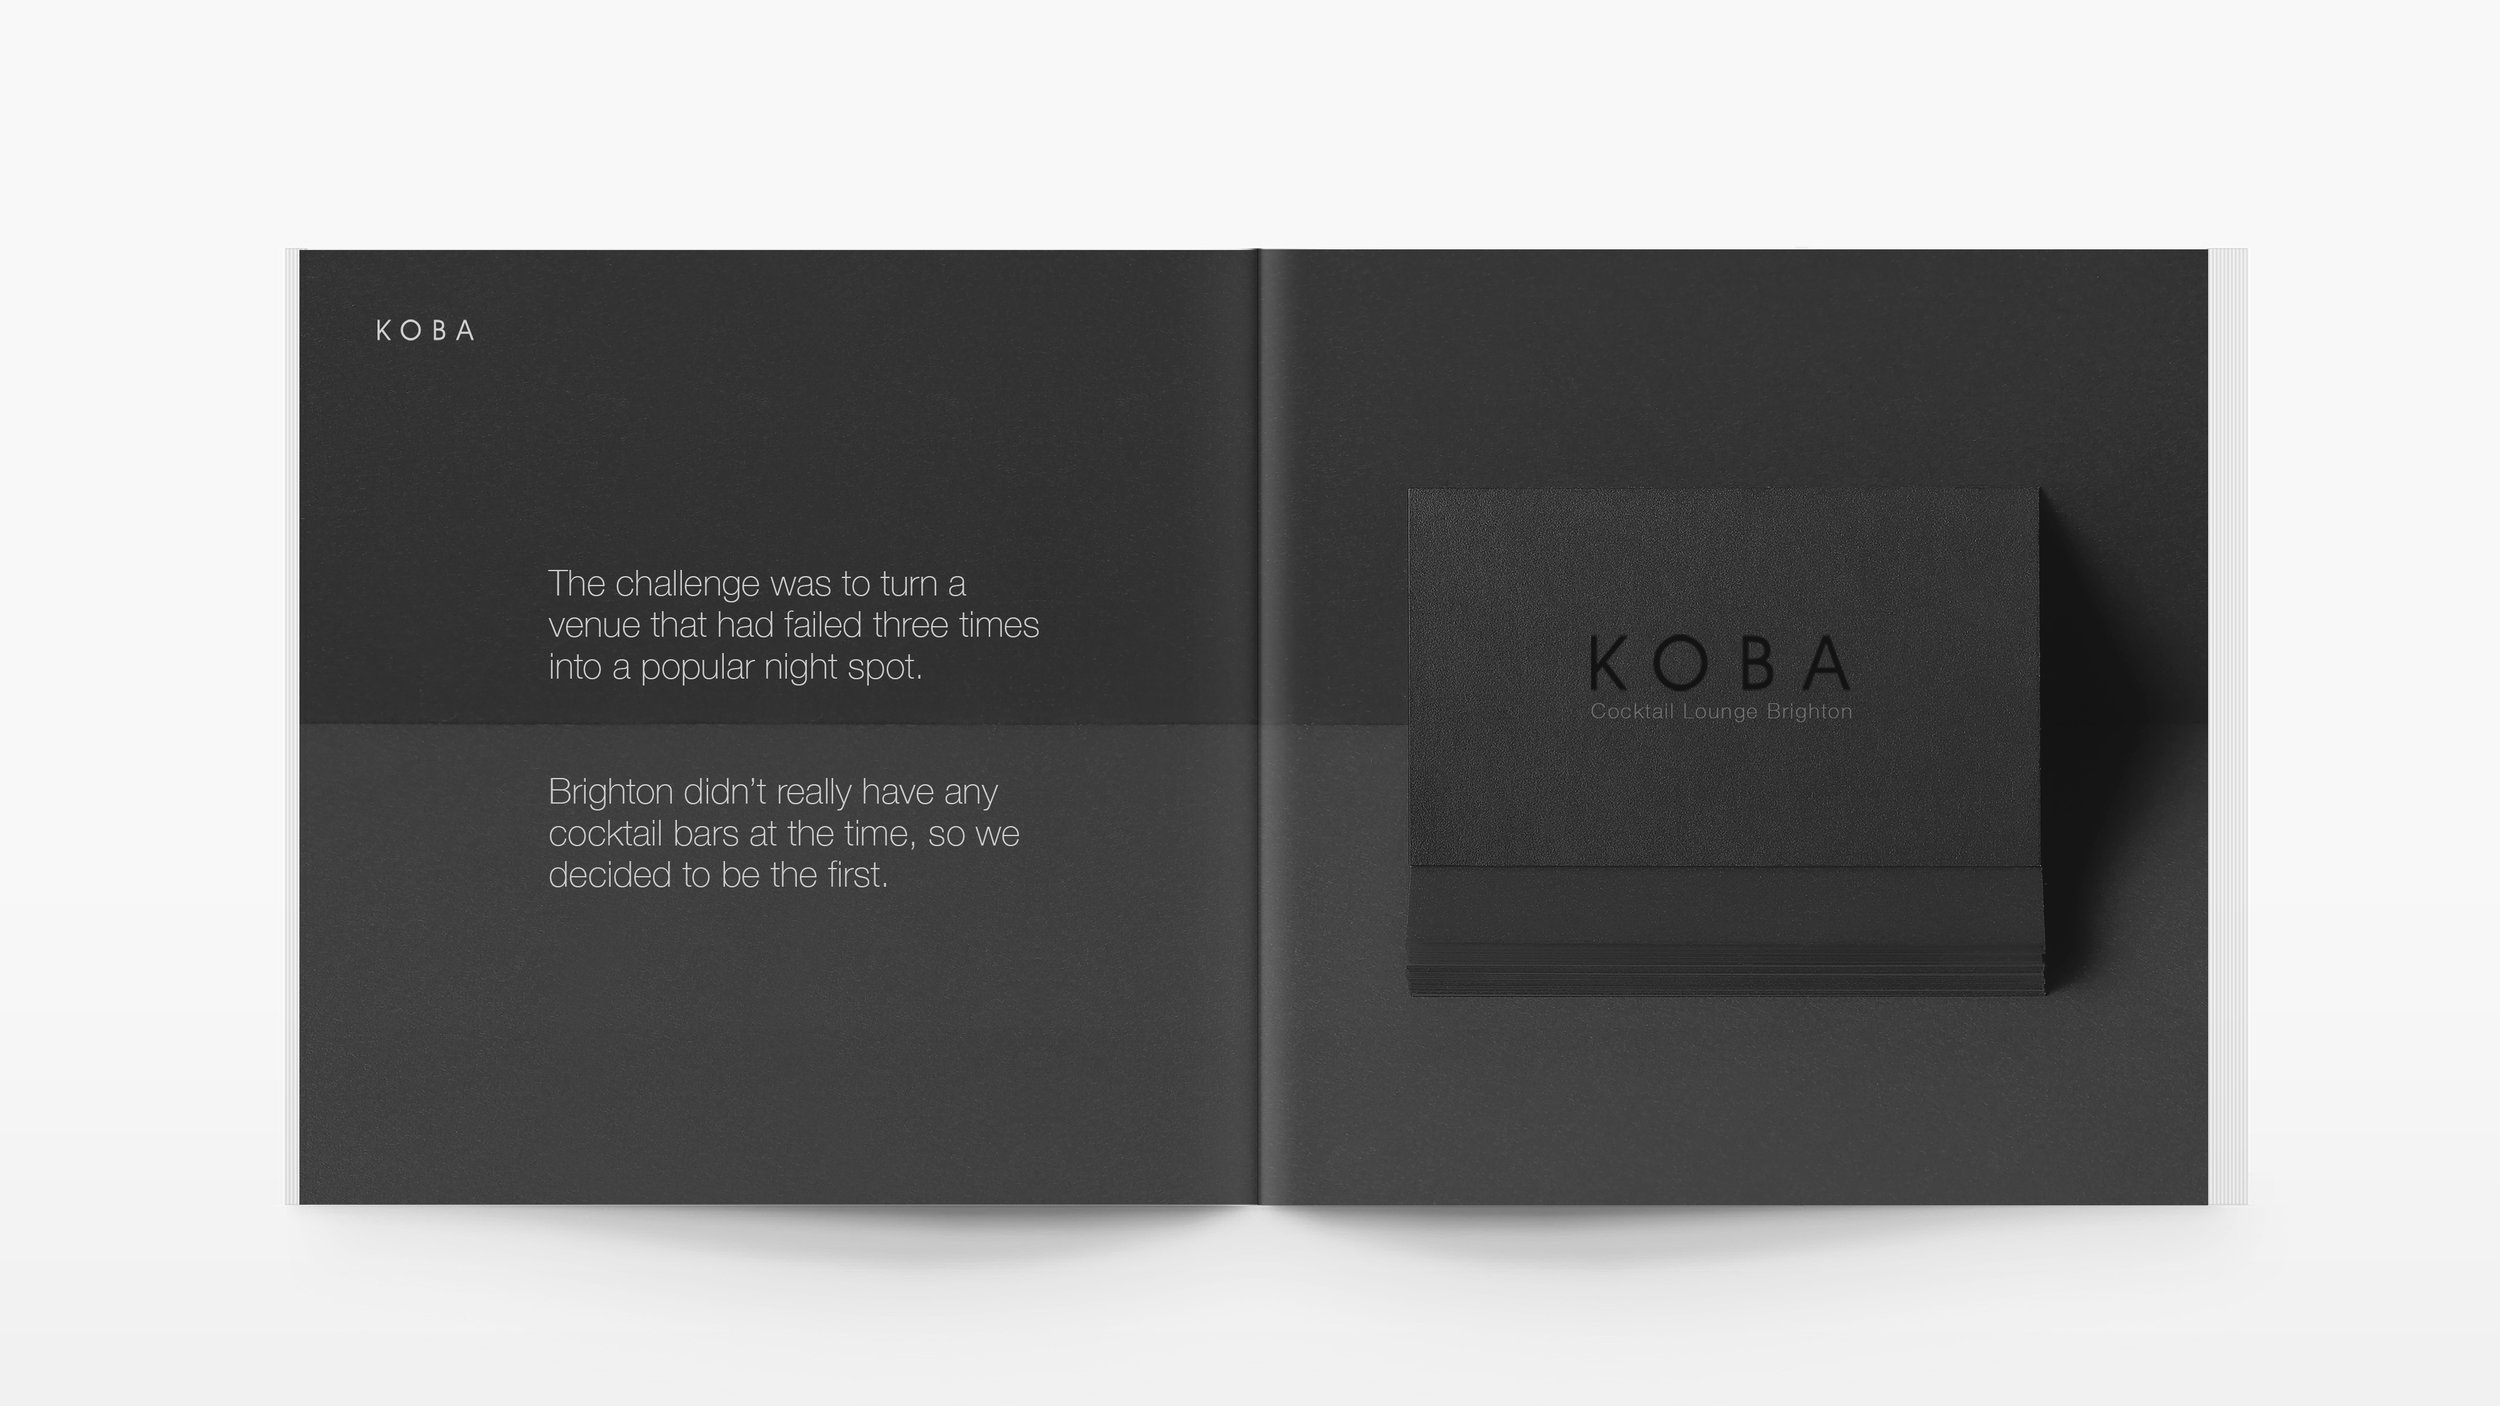 Brand_republica_branding_and_interior_design_koba_bar_brighton_01.jpg